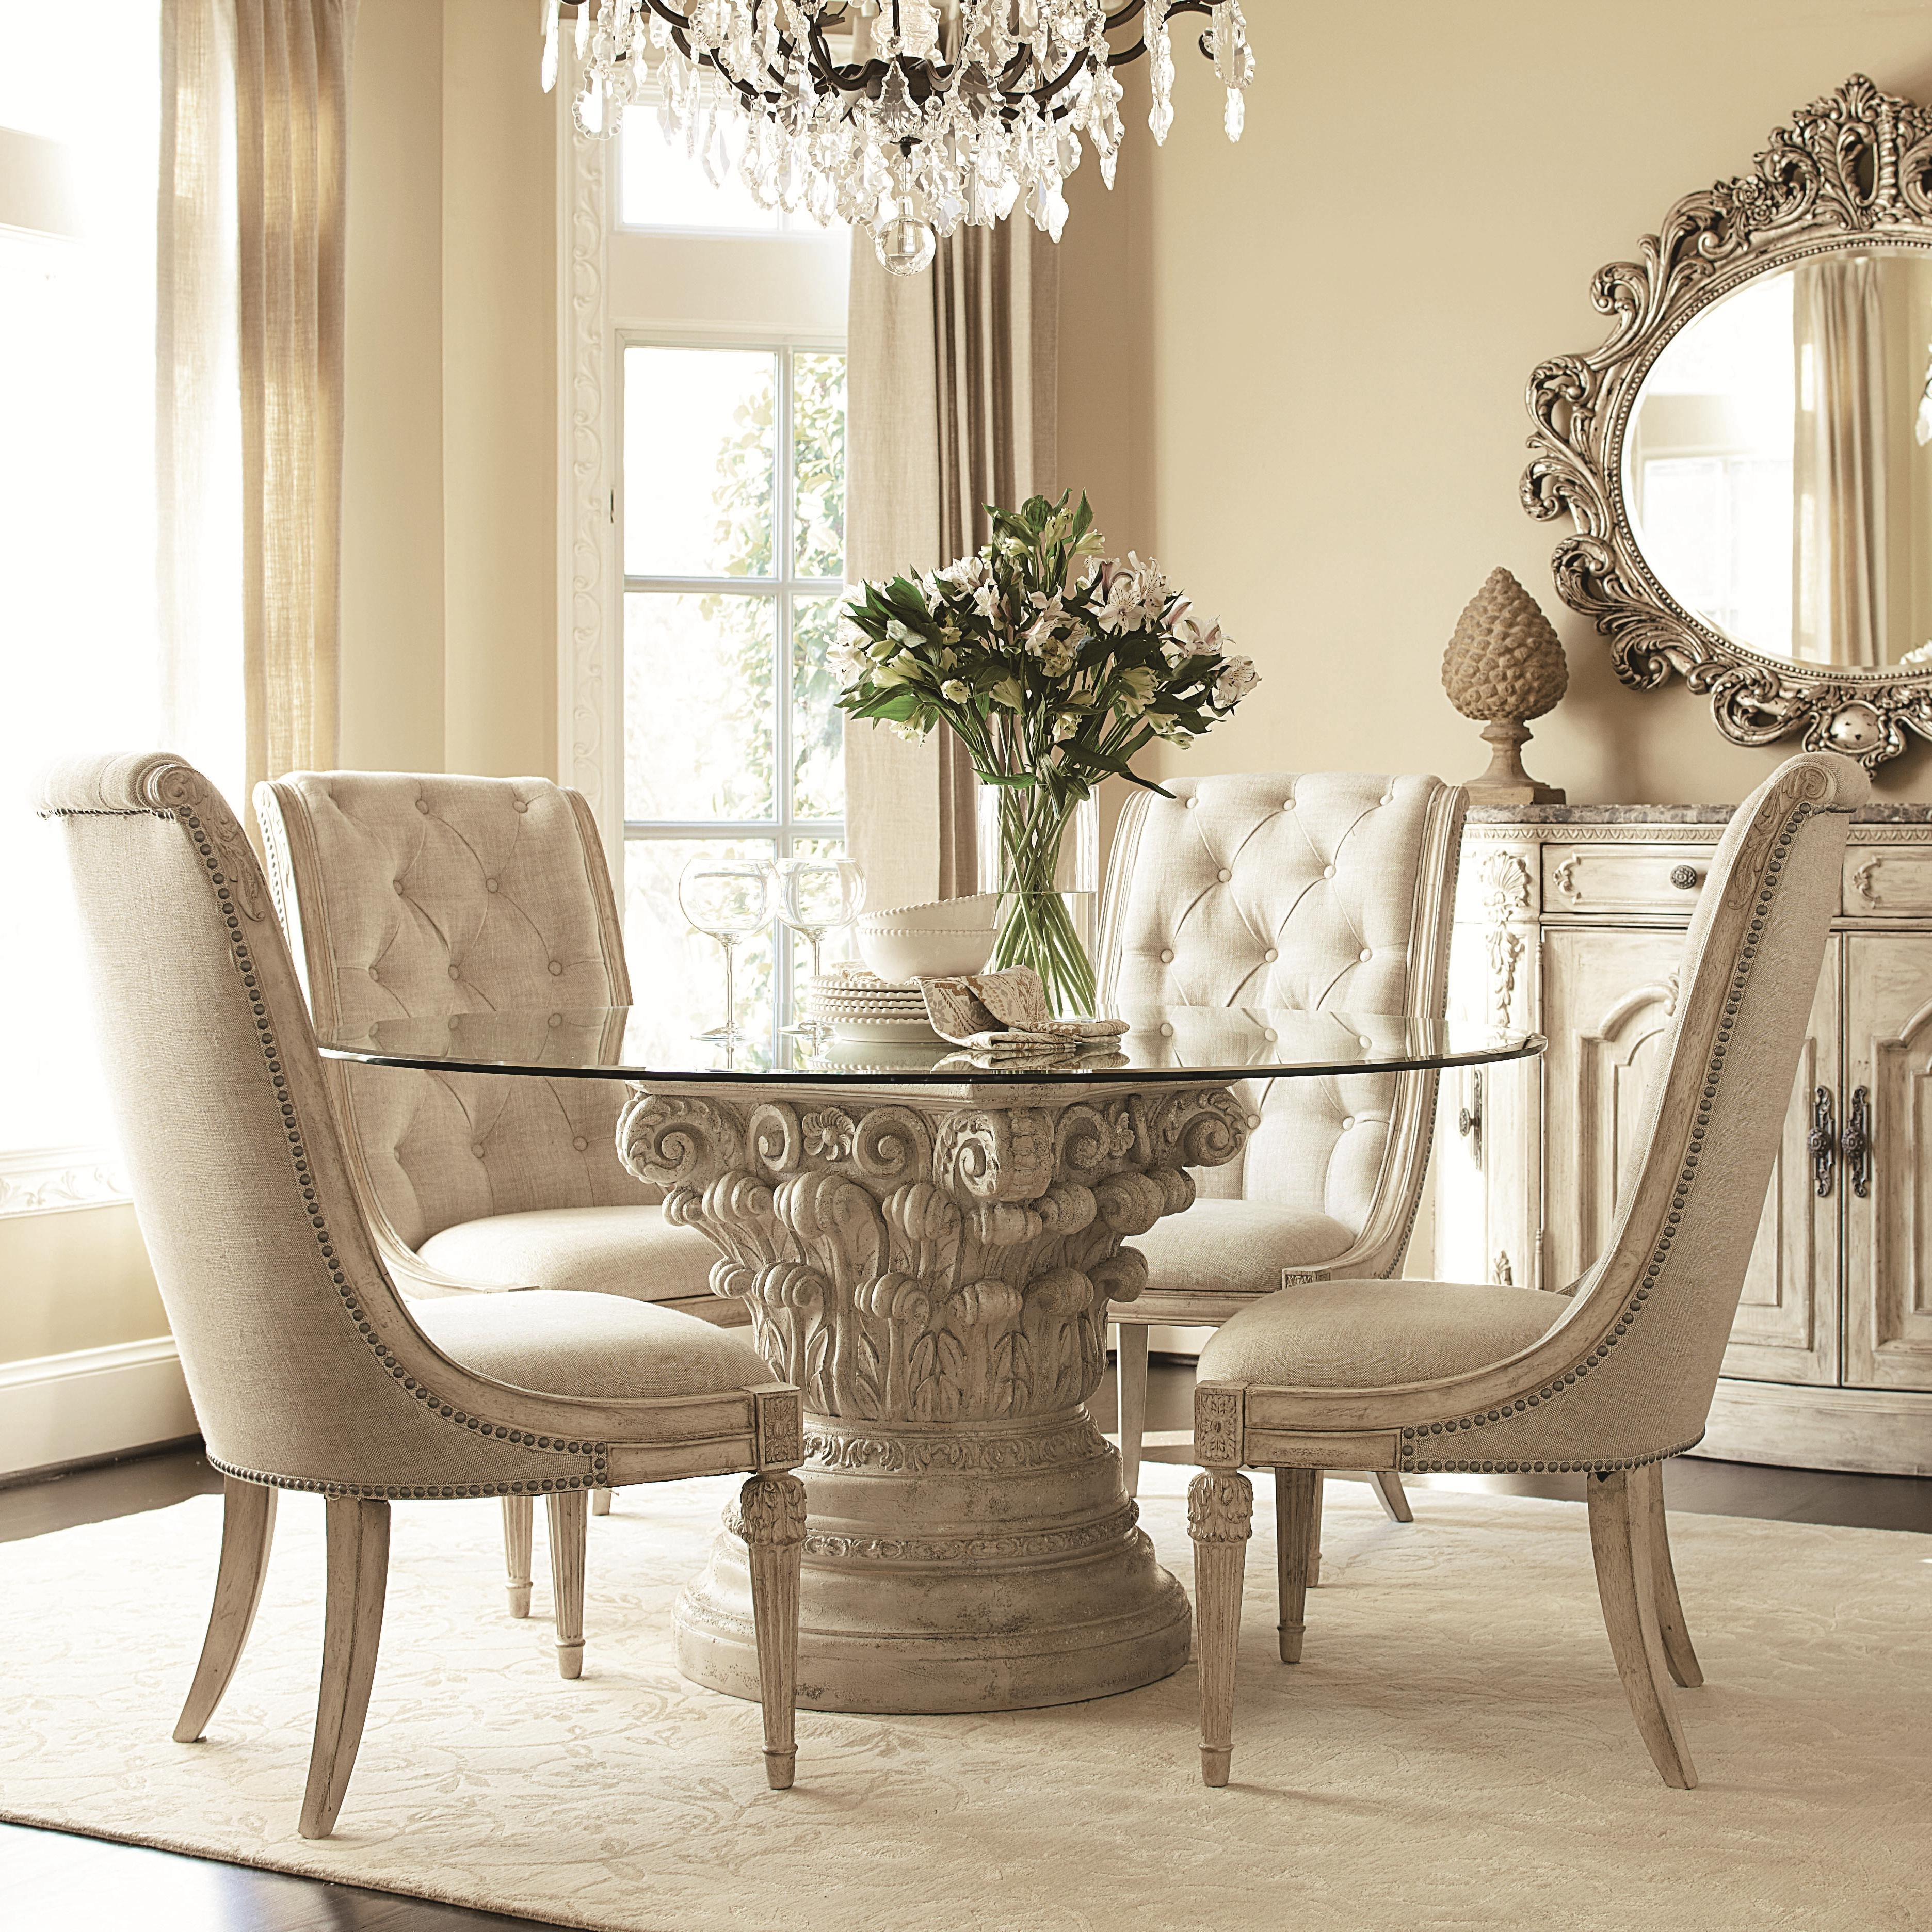 Most Current American Drew Jessica Mcclintock Home – The Boutique Collection 5 Pertaining To Caira Black 5 Piece Round Dining Sets With Diamond Back Side Chairs (View 10 of 25)